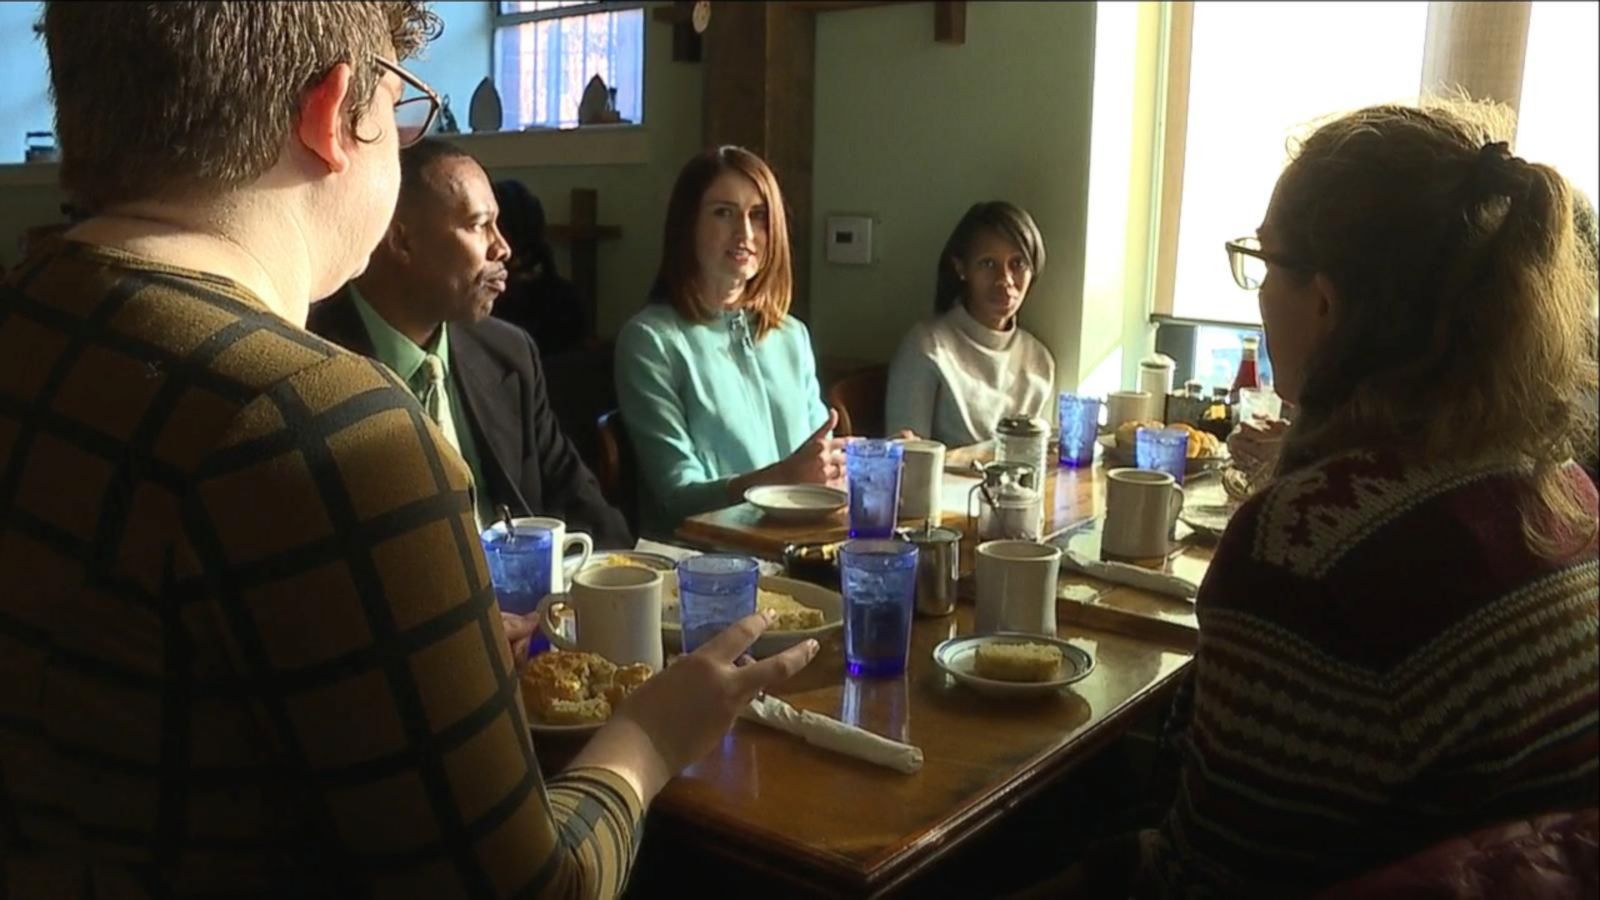 VIDEO: At Philadelphia's Sit and Eat Diner, A Spirited Conversation about 2016 and America's Future